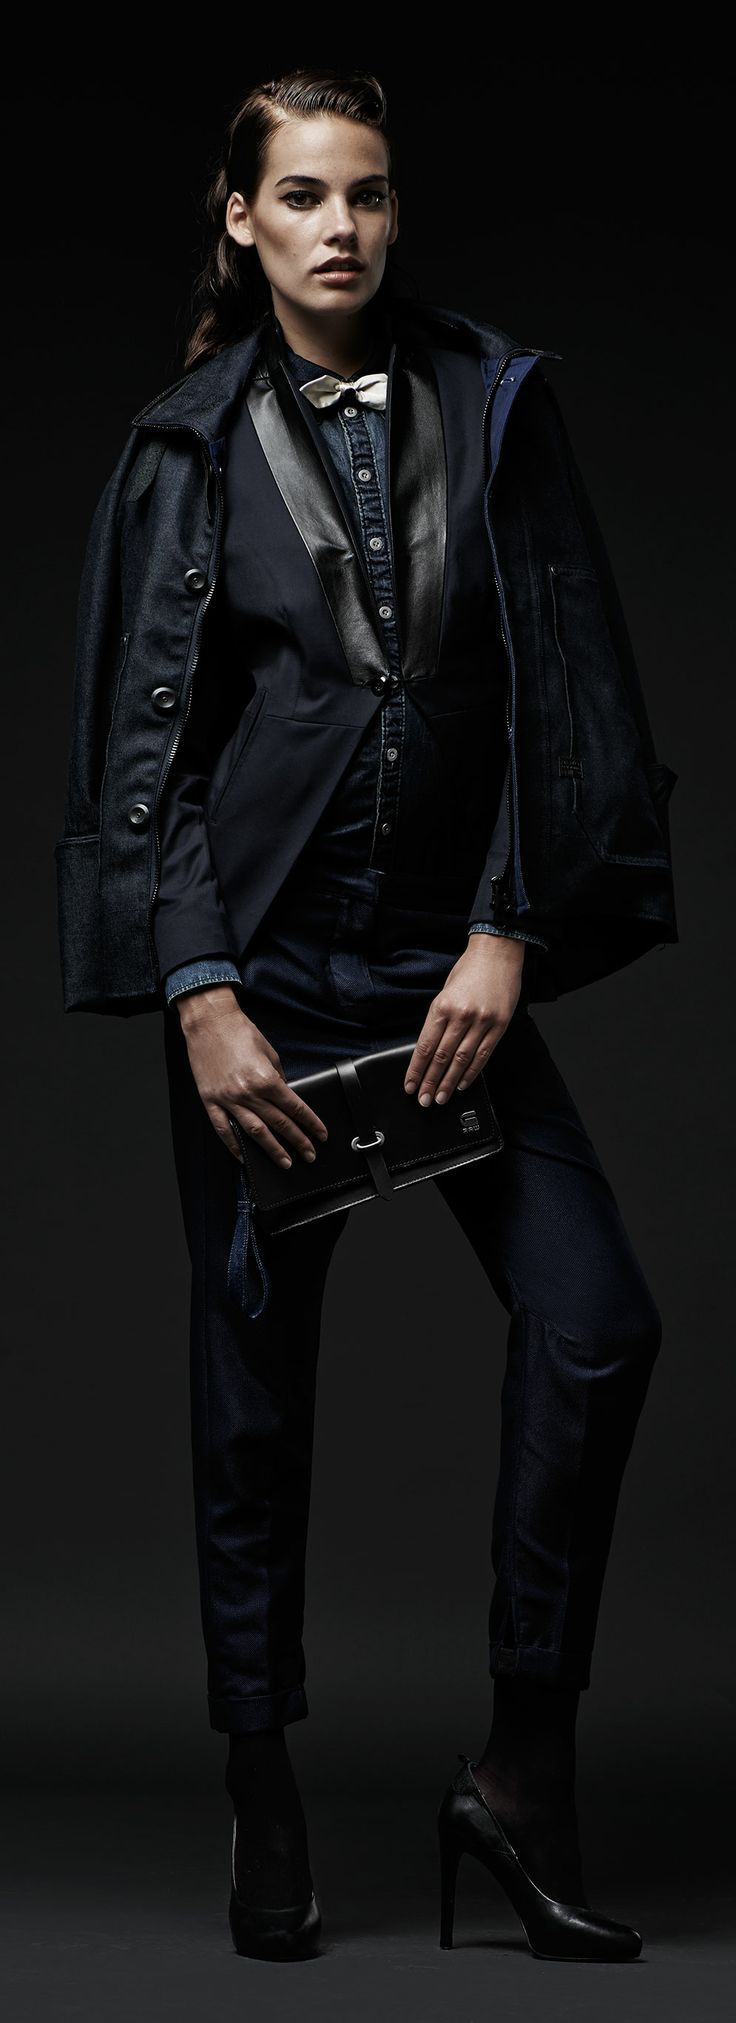 G-STAR RAW MIDNIGHT COLLECTION ALL-NIGHT PARTY An unexpected combination of denim and silk for seasonal revelry https://www.g-star.com/collection/women/midnight-look-3